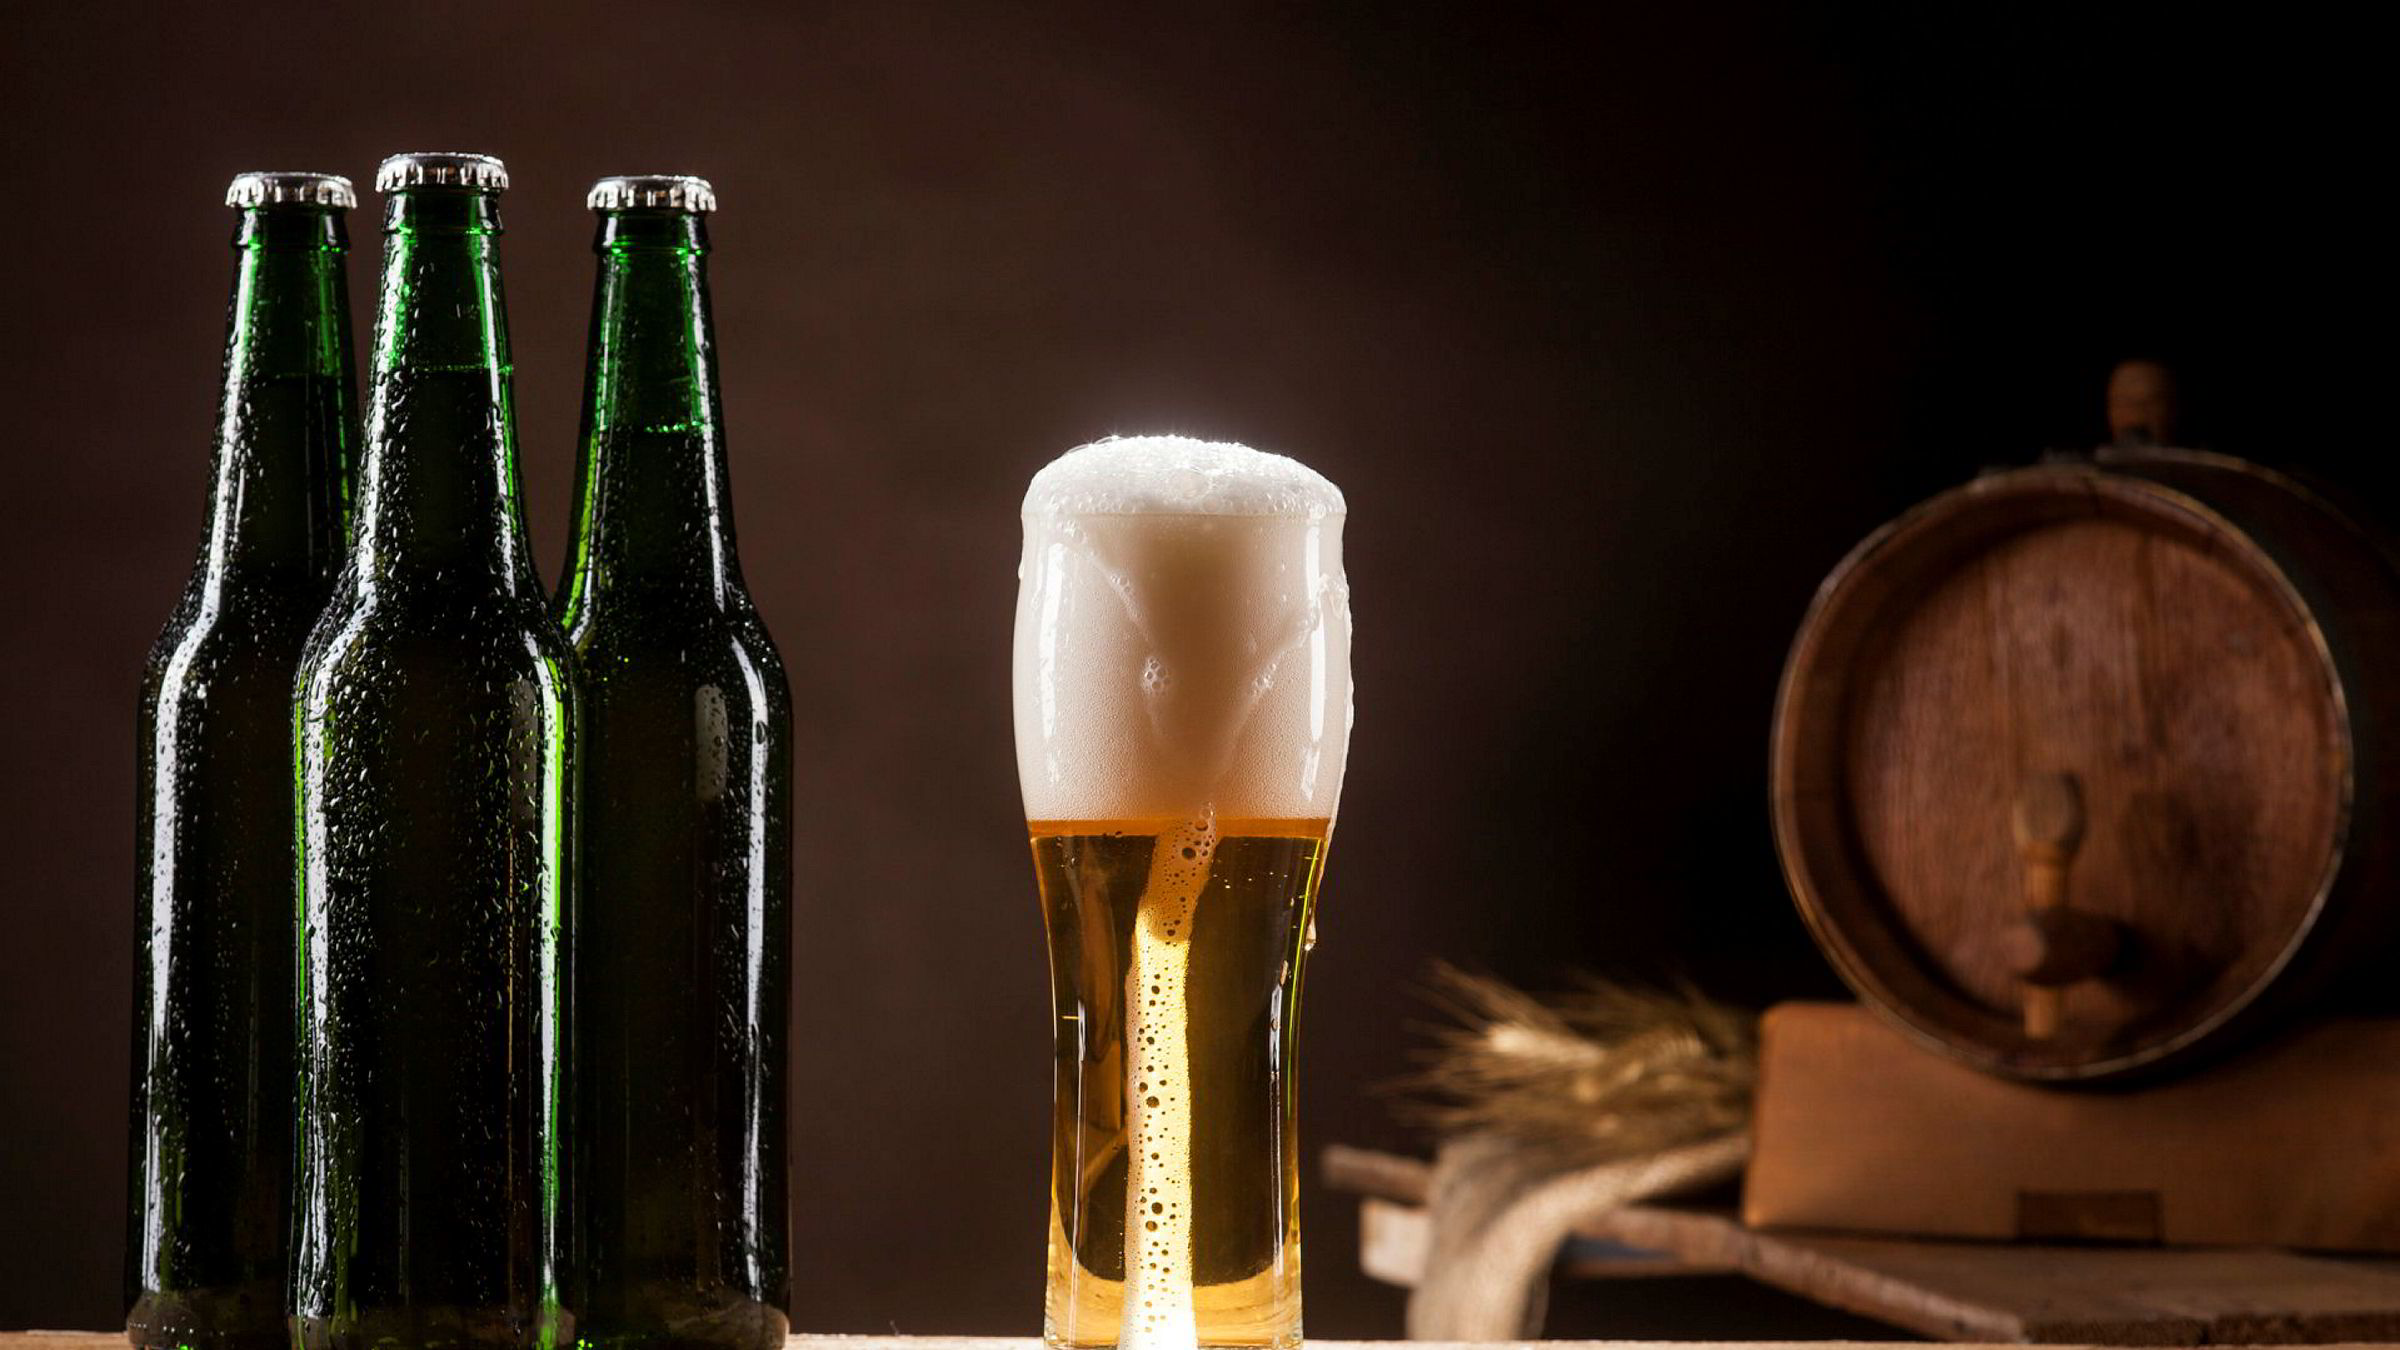 Beer barrel with beer mug and three bottles on a brown dark background. ---